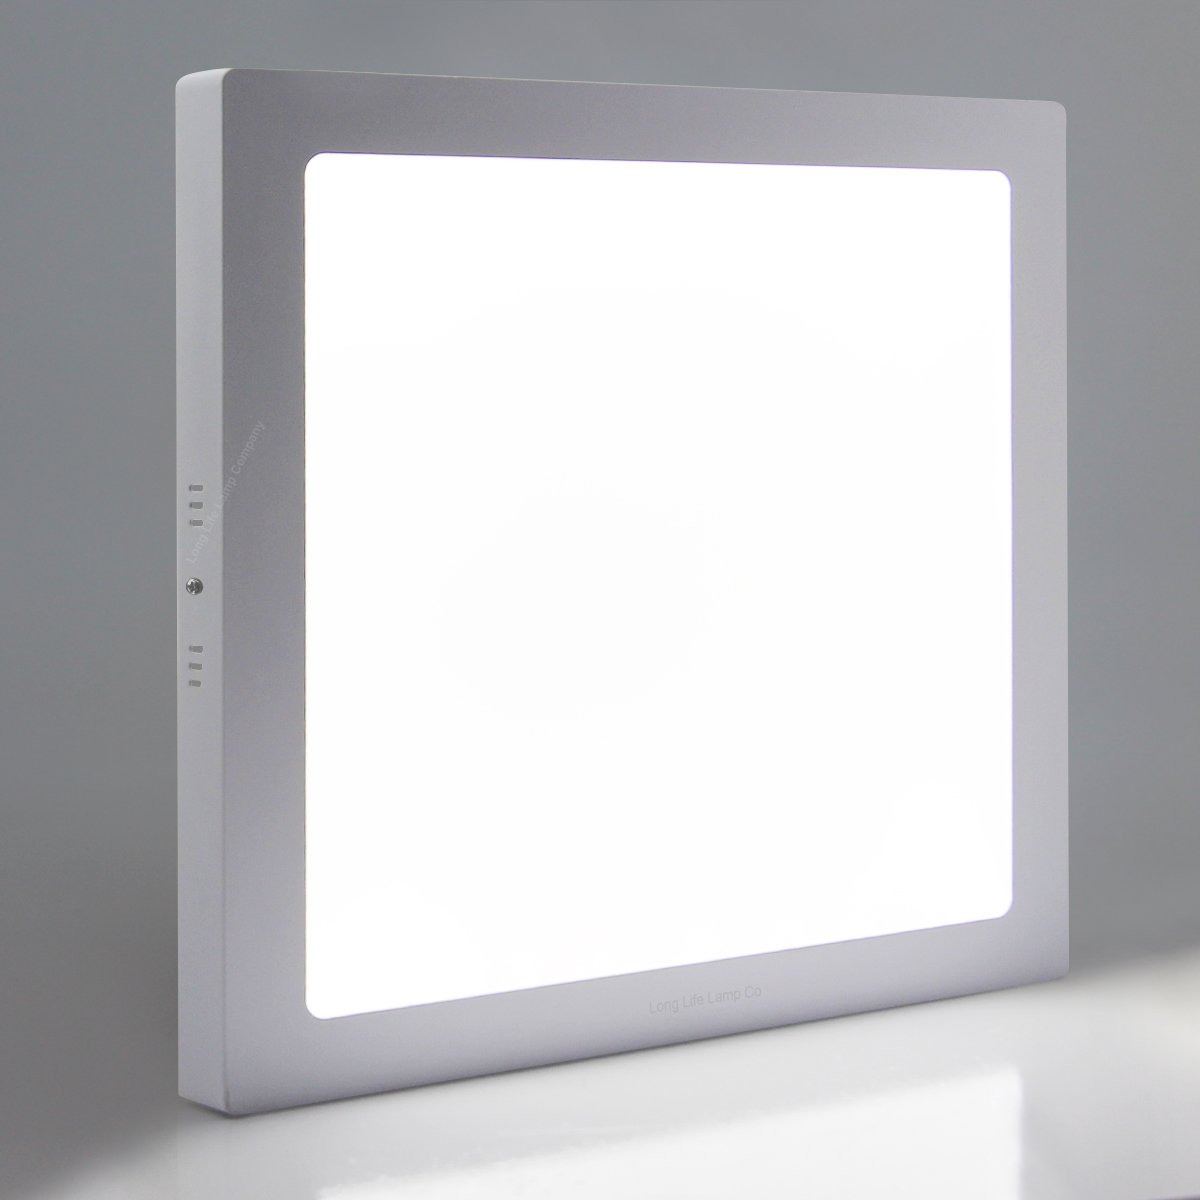 24W LED Square Surface Mount Ceiling Panel Down Light Cool White 6500K Super Bright [Energy Class A+] Long Life Lamp Company